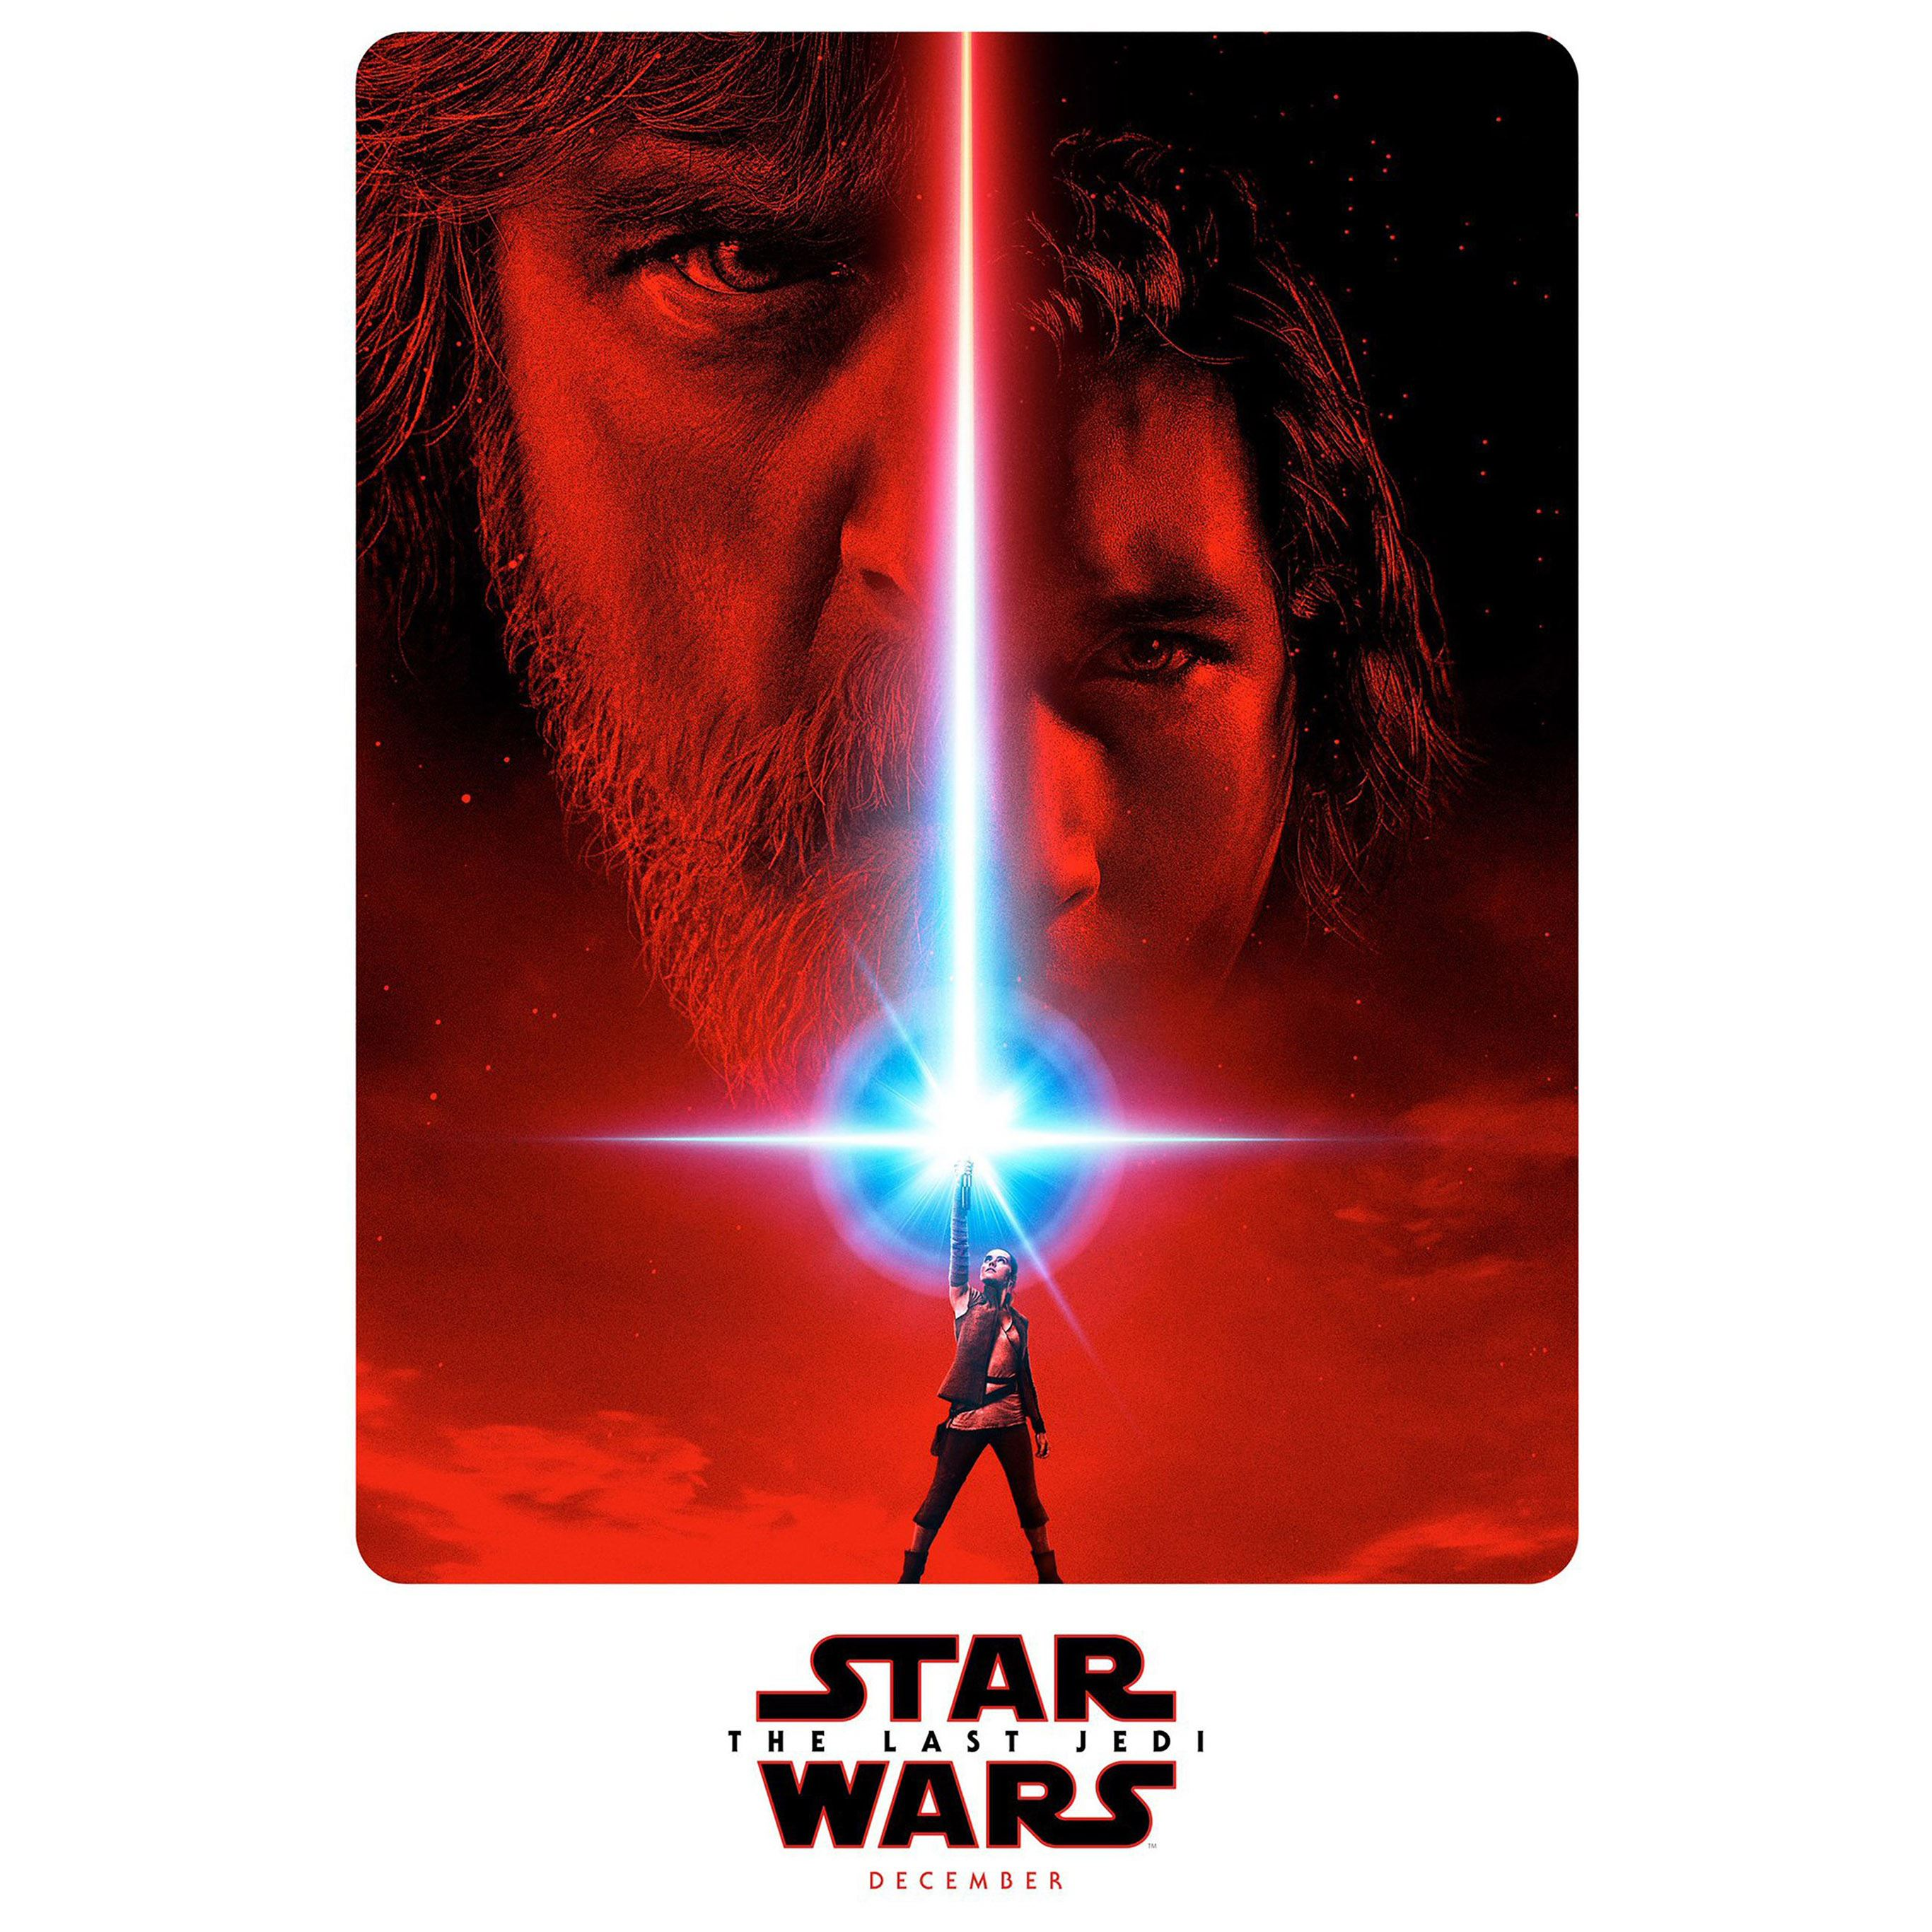 Last jedi starwars poster art illustration iPad Pro wallpaper